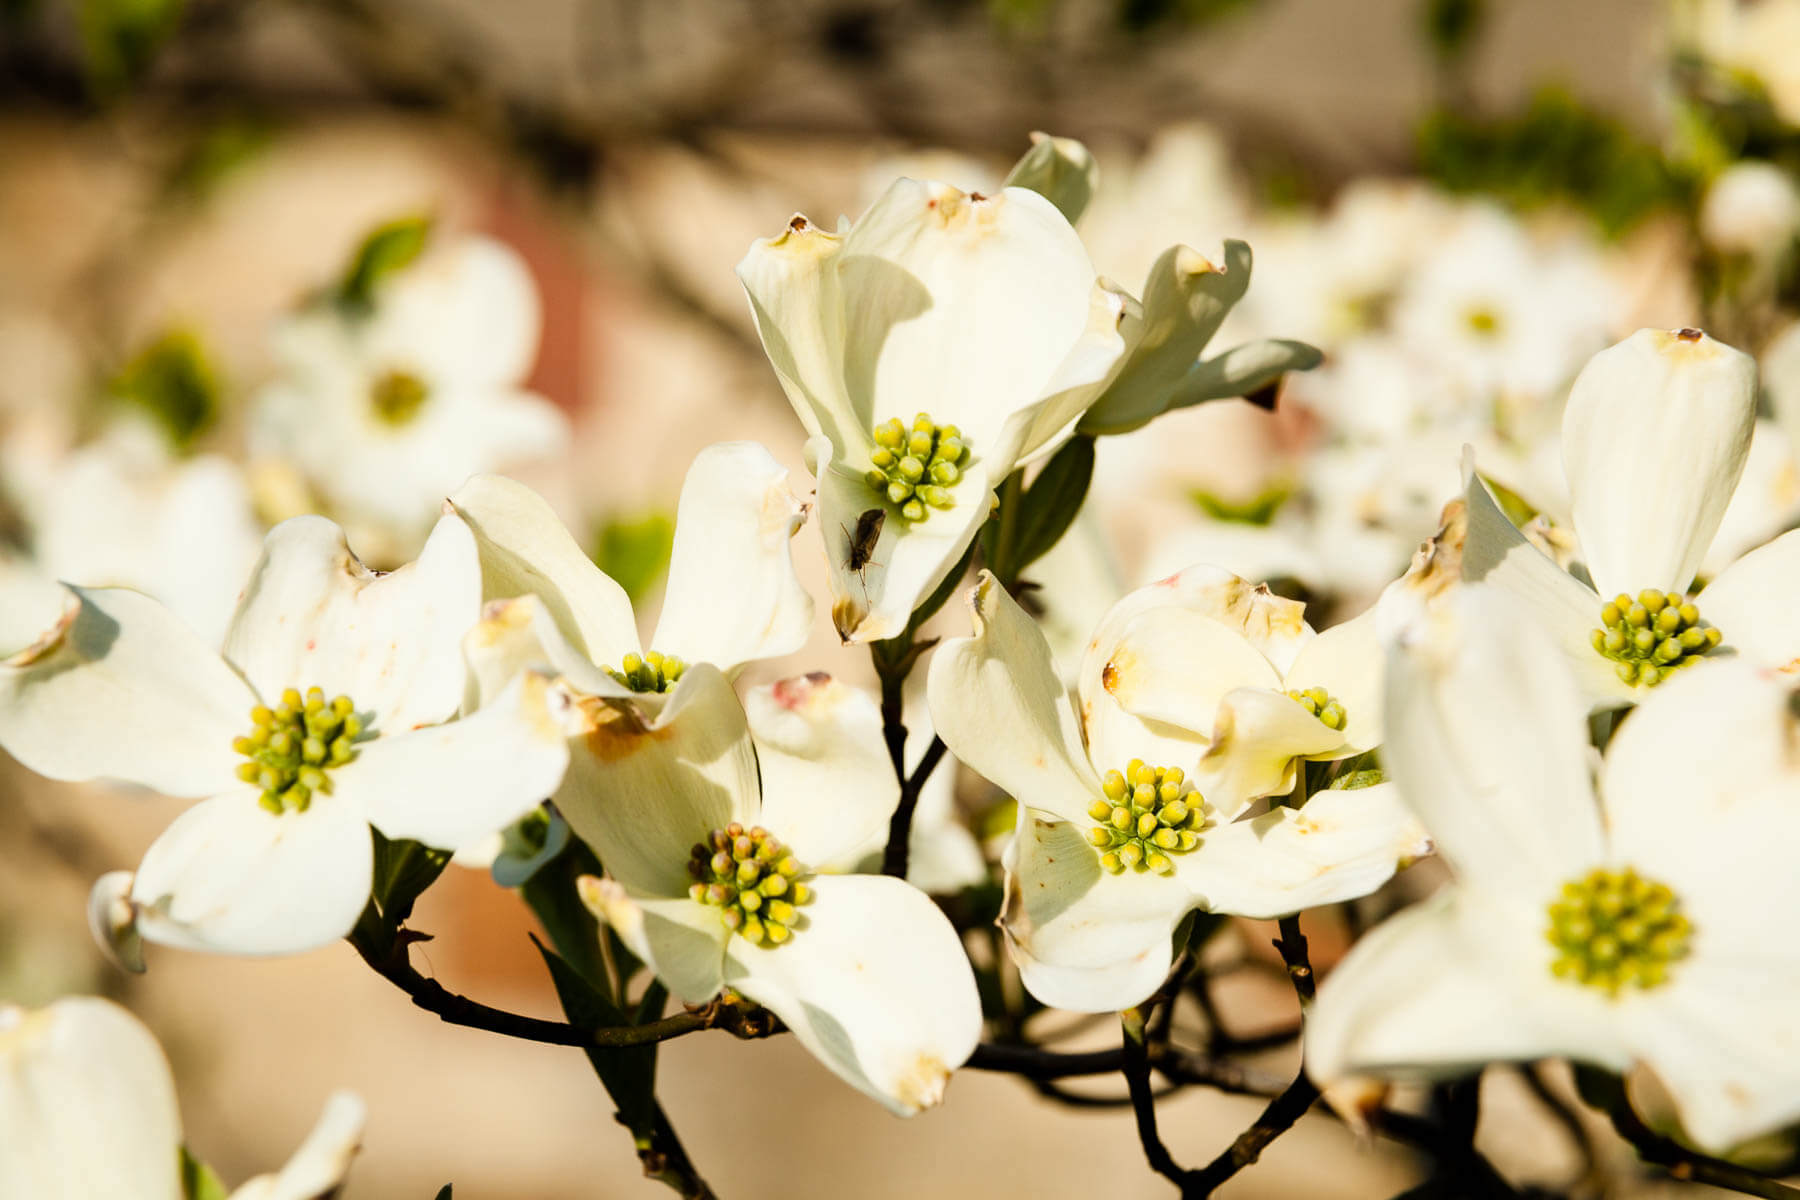 White flowers with thick petals sit close together on a tree branch